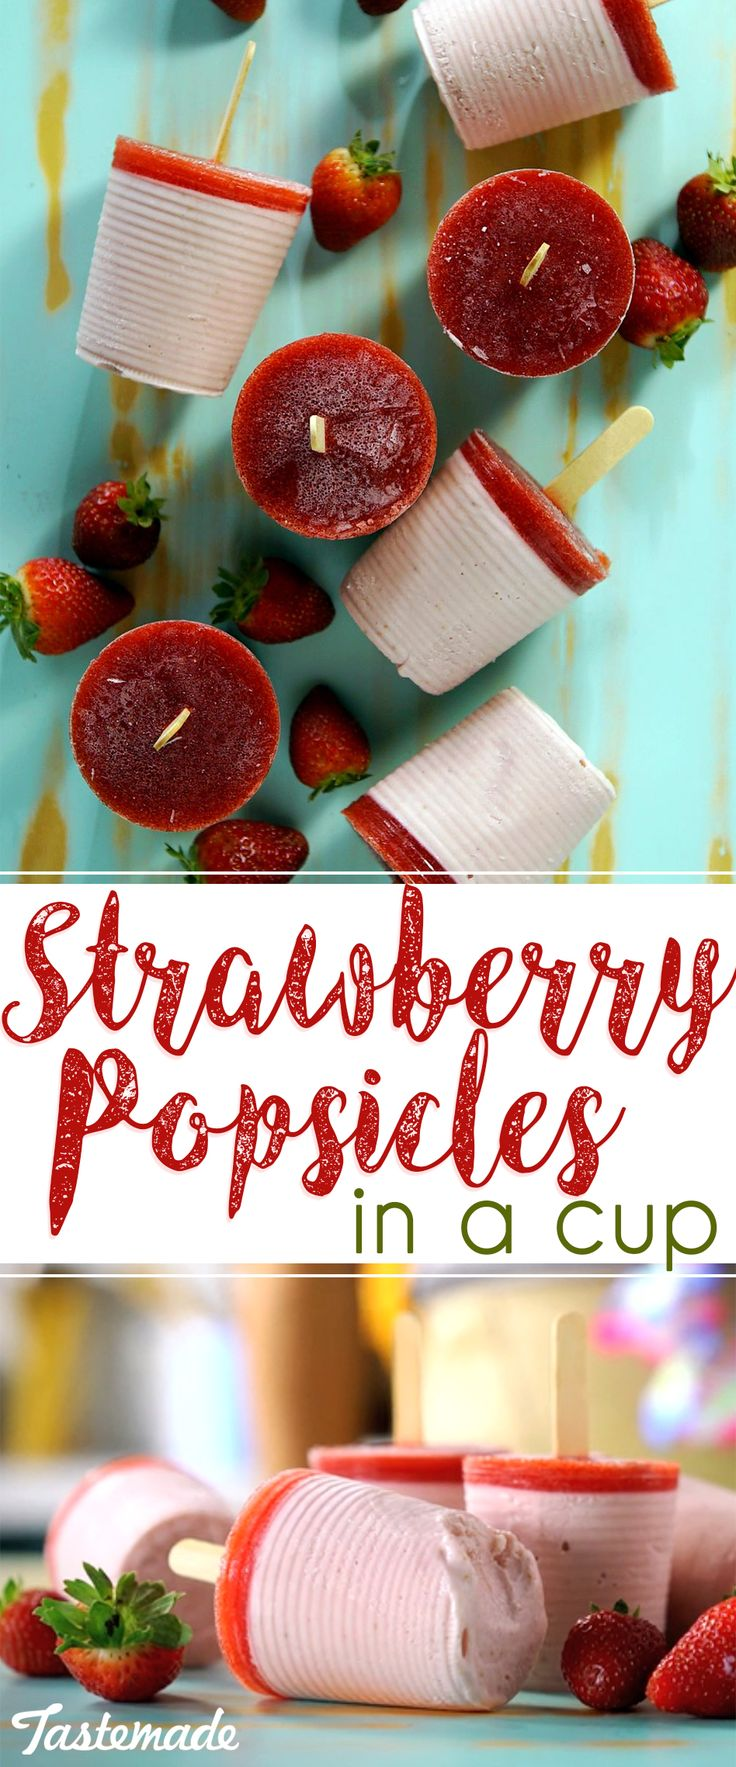 Made easily in plastic cups, these frozen strawberry treats are simple yet so tasty.